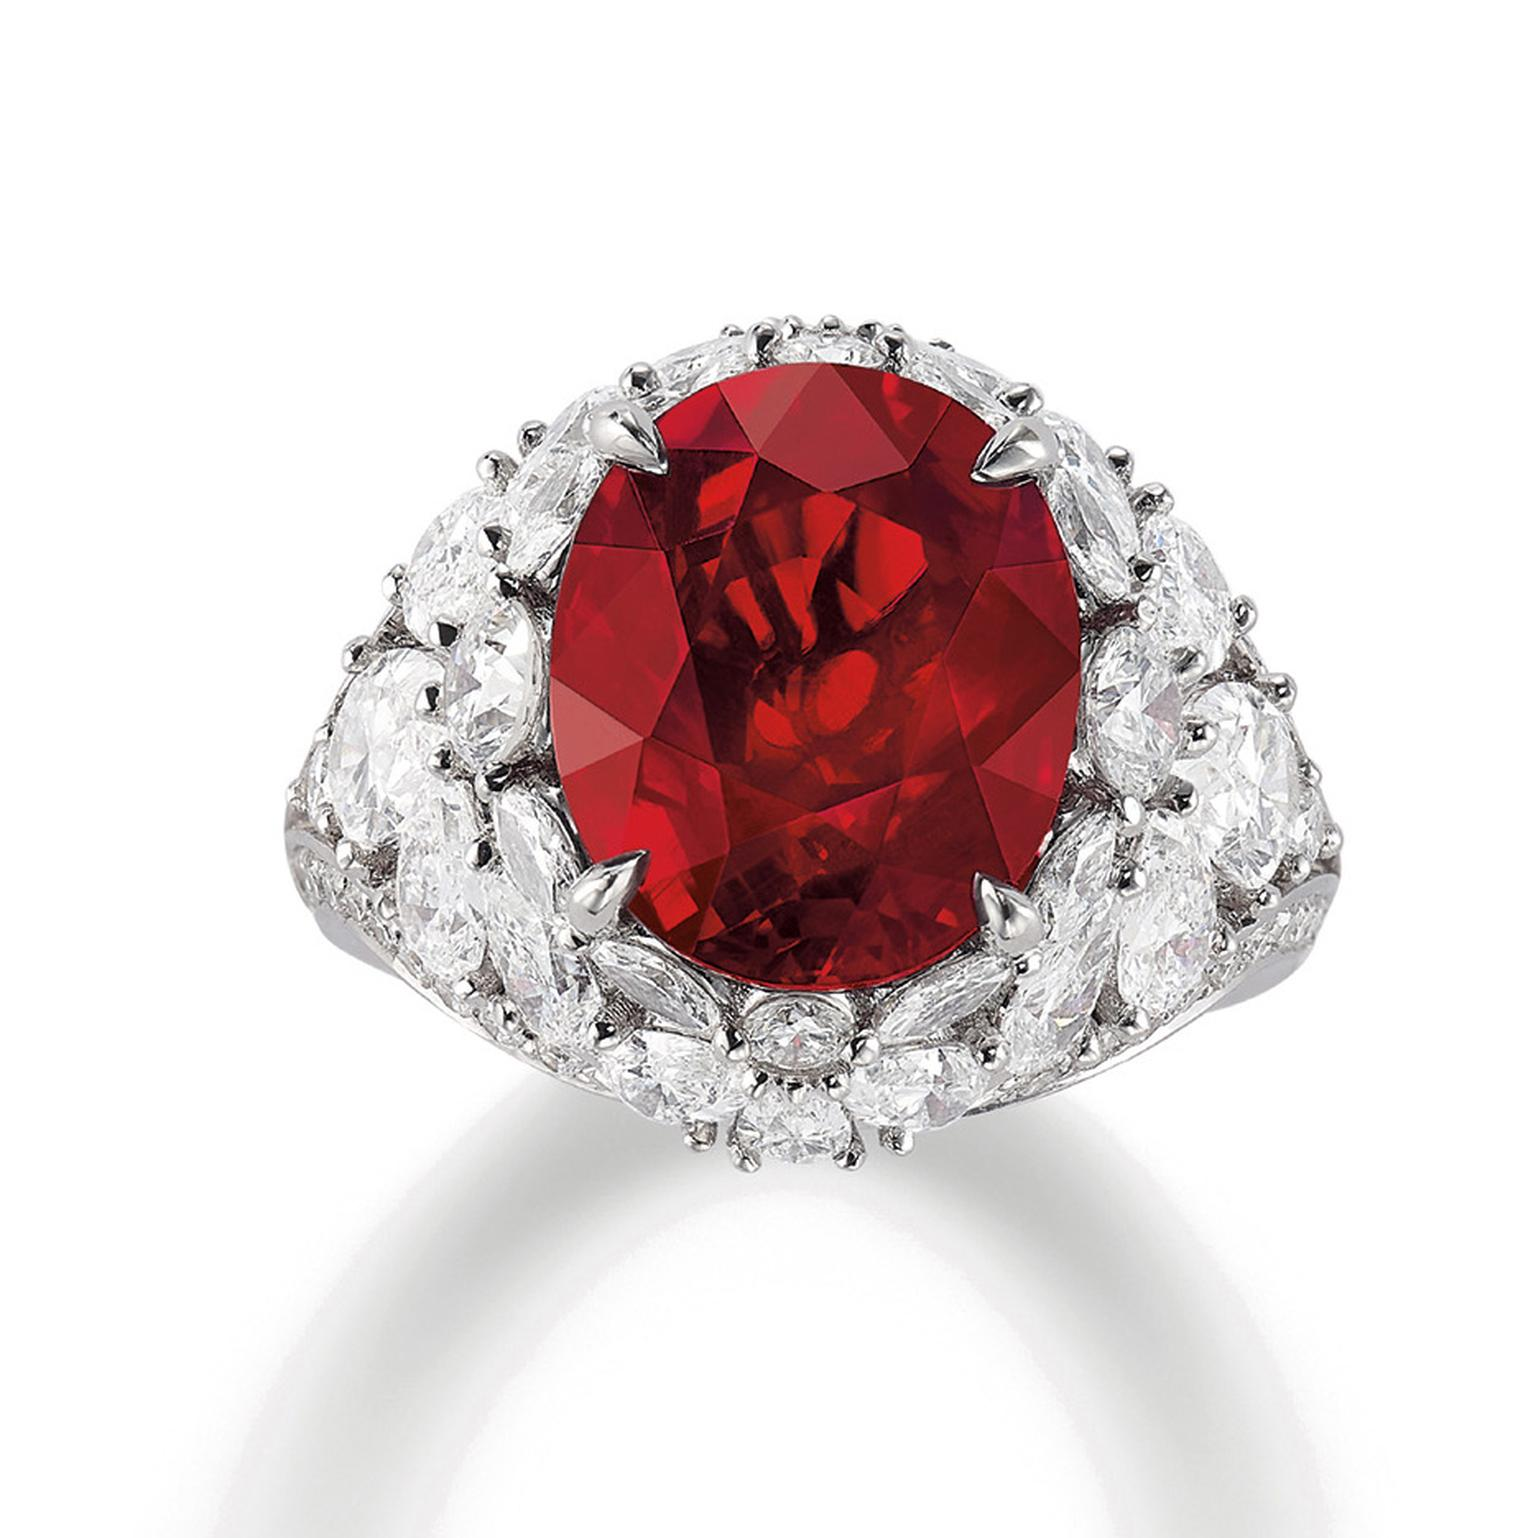 Lot 588 Ruby and diamonds ring Phillips auction